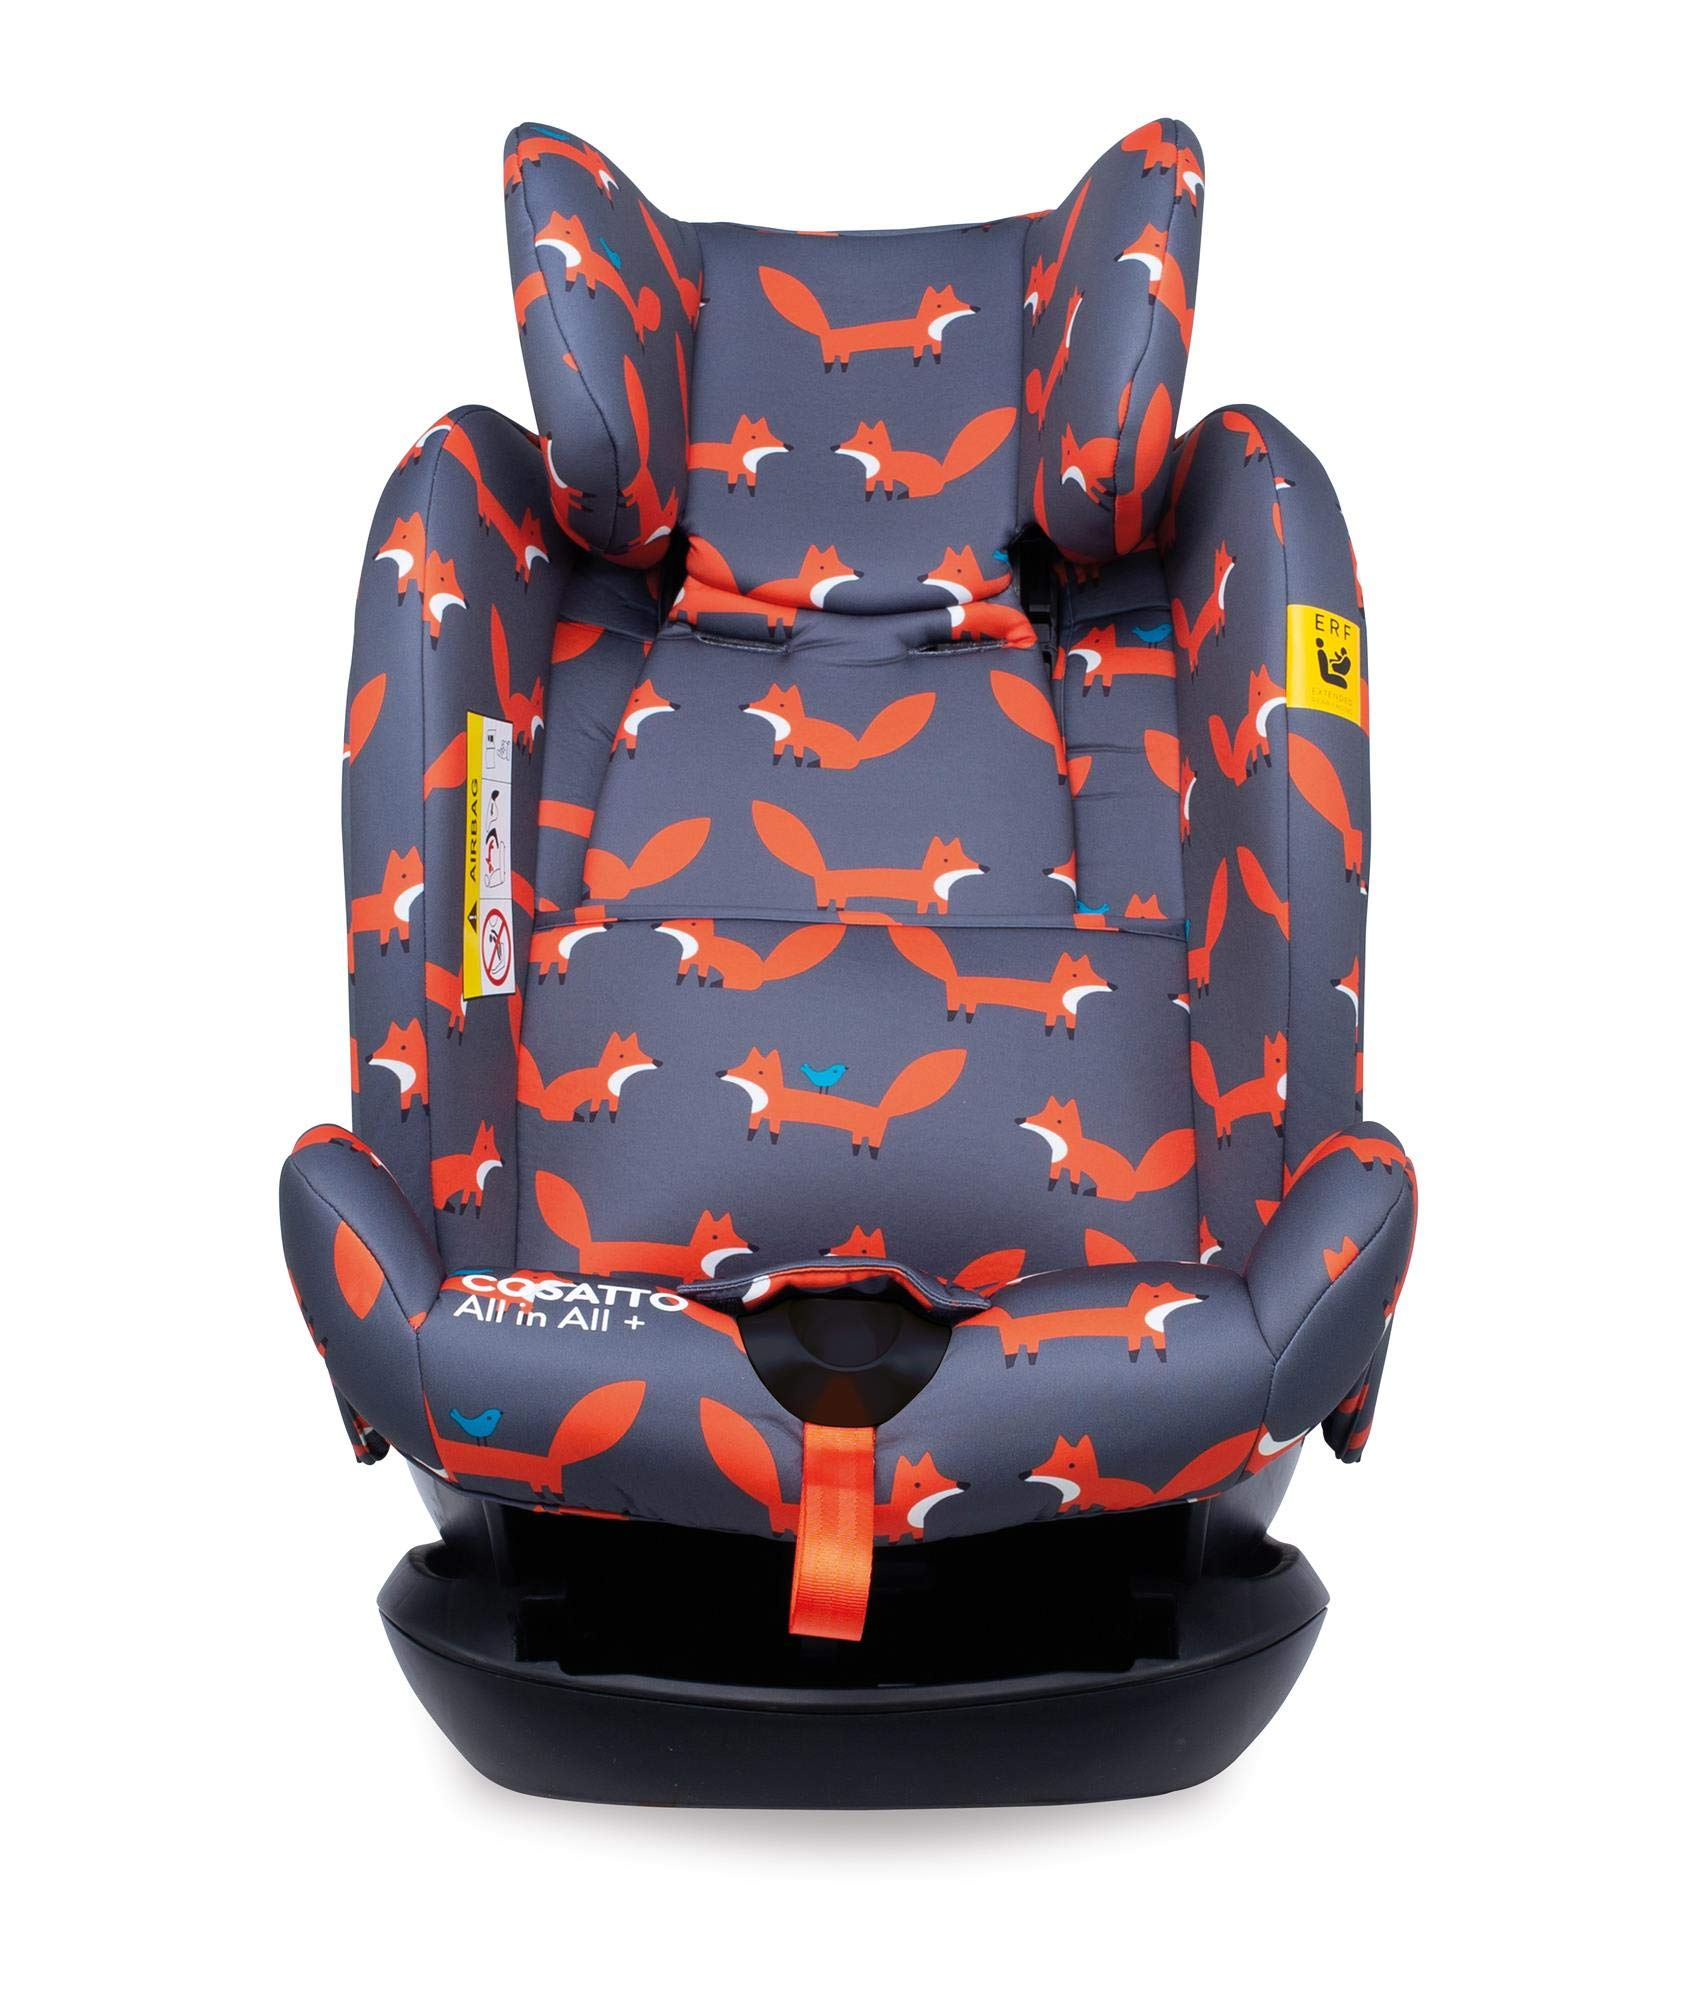 Cosatto CT4241 All in All + Group 0+123 Car Seat Mister Fox 8.9 kg Cosatto Extended rear facing Suitable for all stages Extra security 9